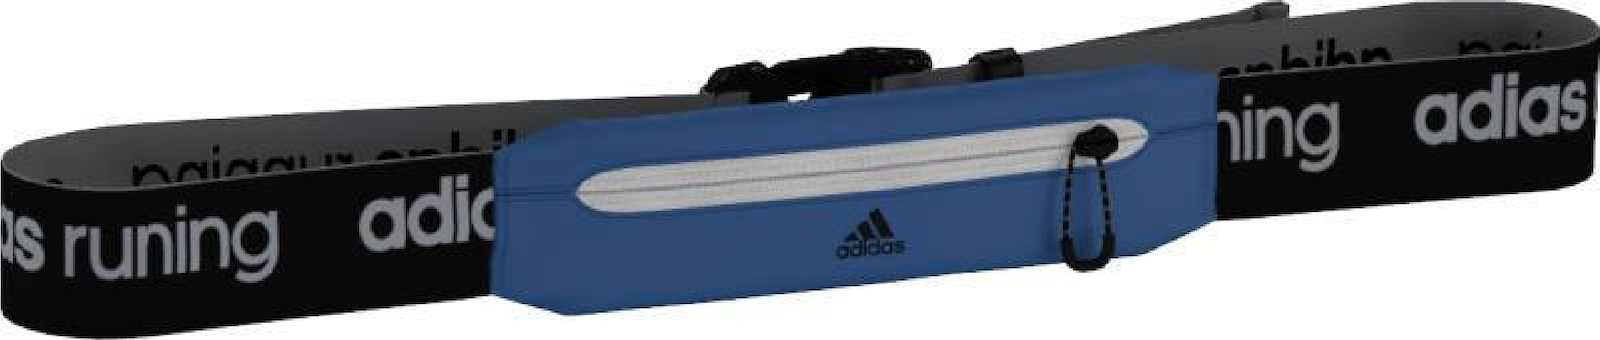 Adidas Run Belt For Only Php795 Available At Runnr While Stocks Last 77234